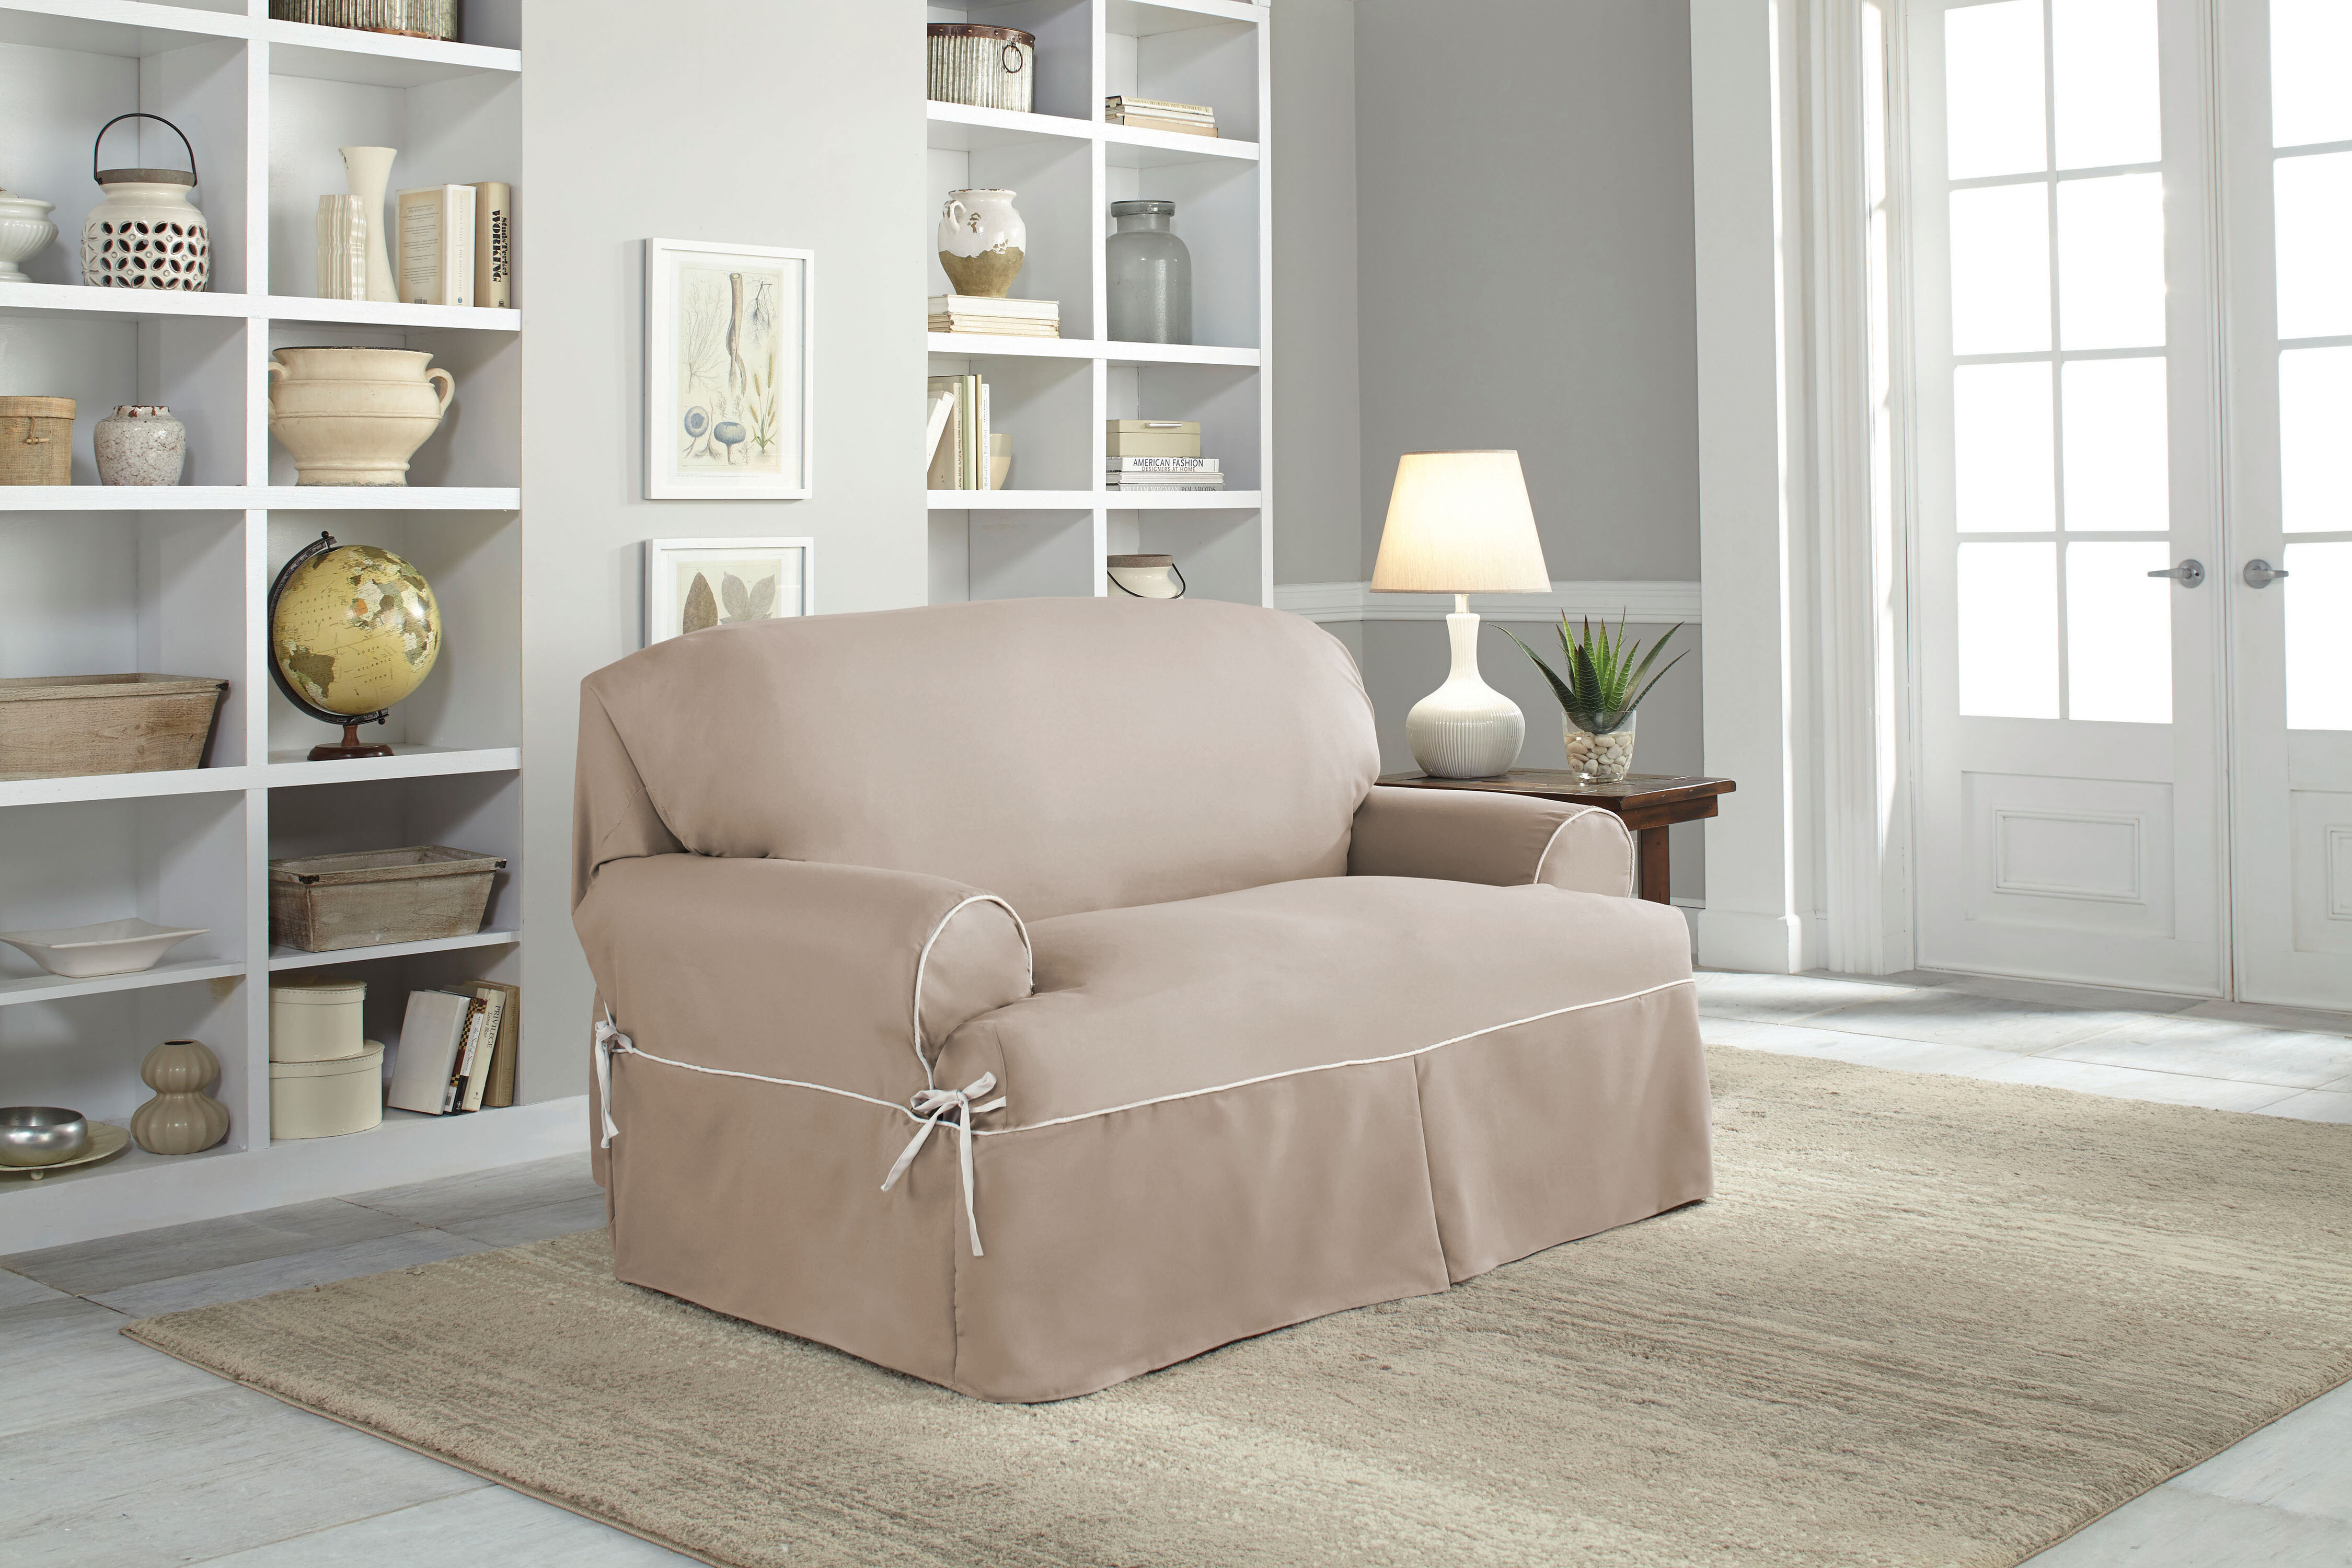 loveseat under sure slipcovers architecture fit t new cushion decor decorating color artistic slipcover marvelous